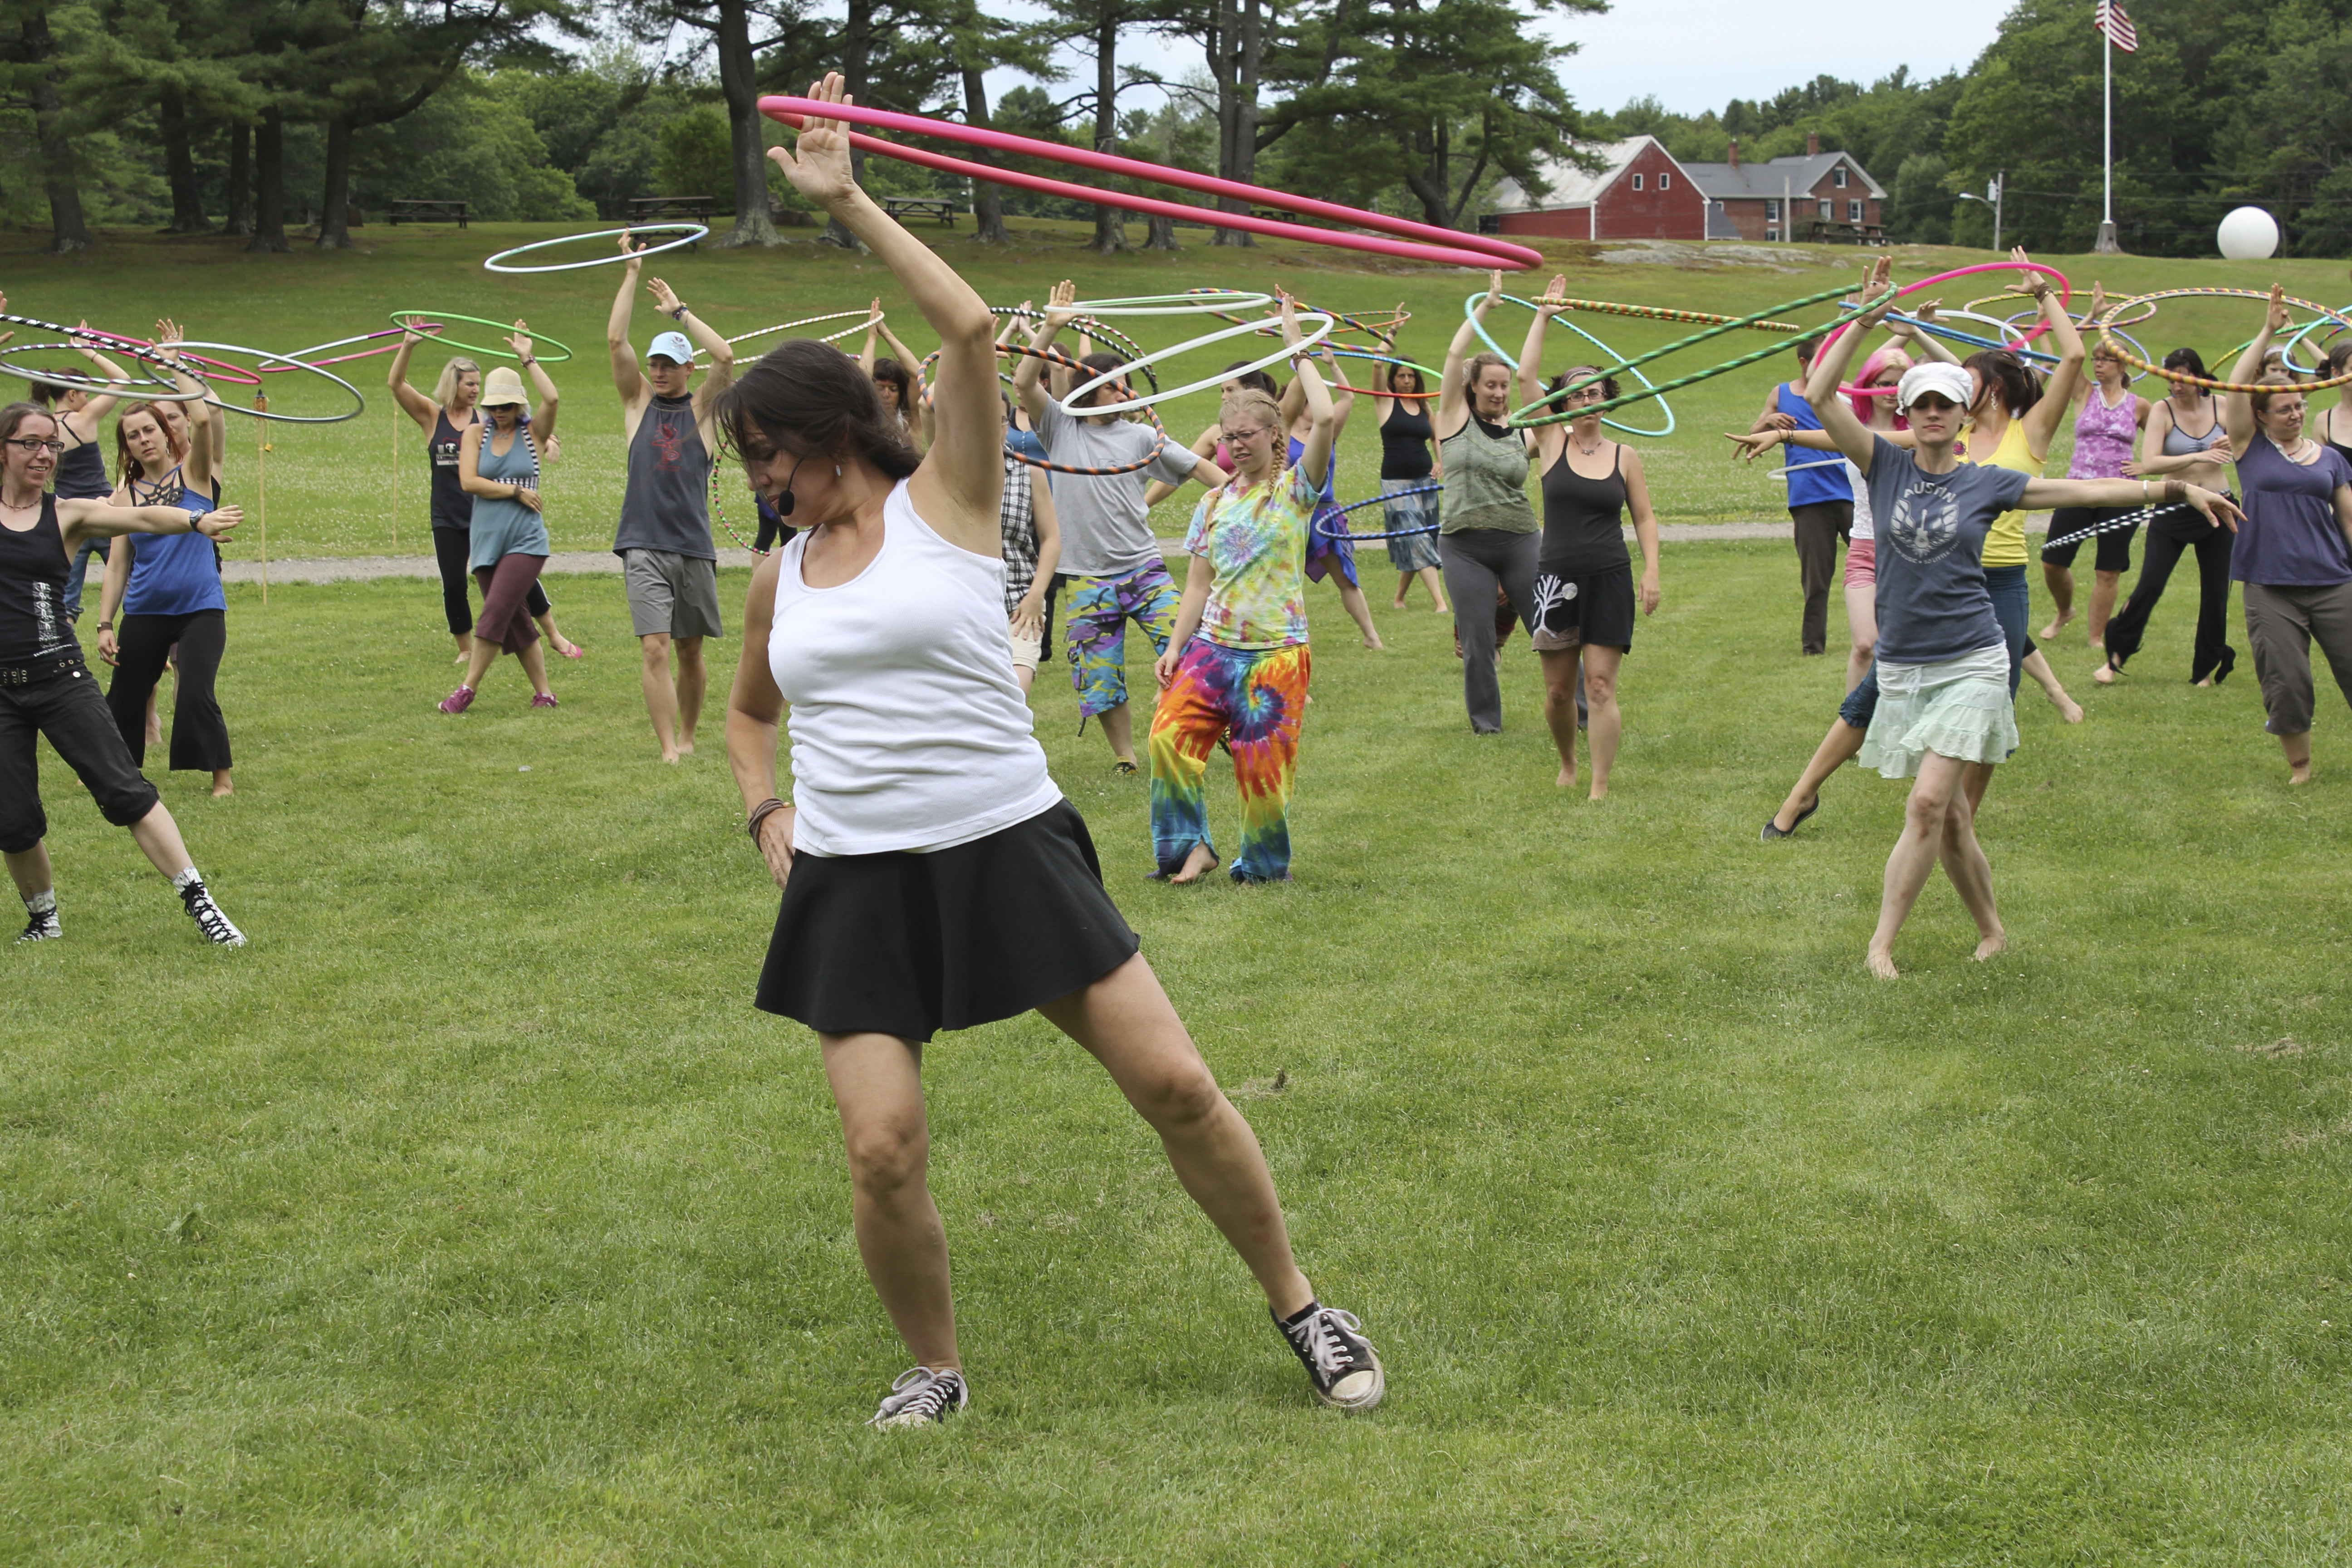 Carolyn Mabry, 48, of Raleigh, N.C., better known as Caroleena from her hooping tutorial videos on YouTube, leads a class Friday in Brunswick during HoopFest. The festival is the first of its kind in the nation, spurred by a national trend of hooping for fun and exercise.